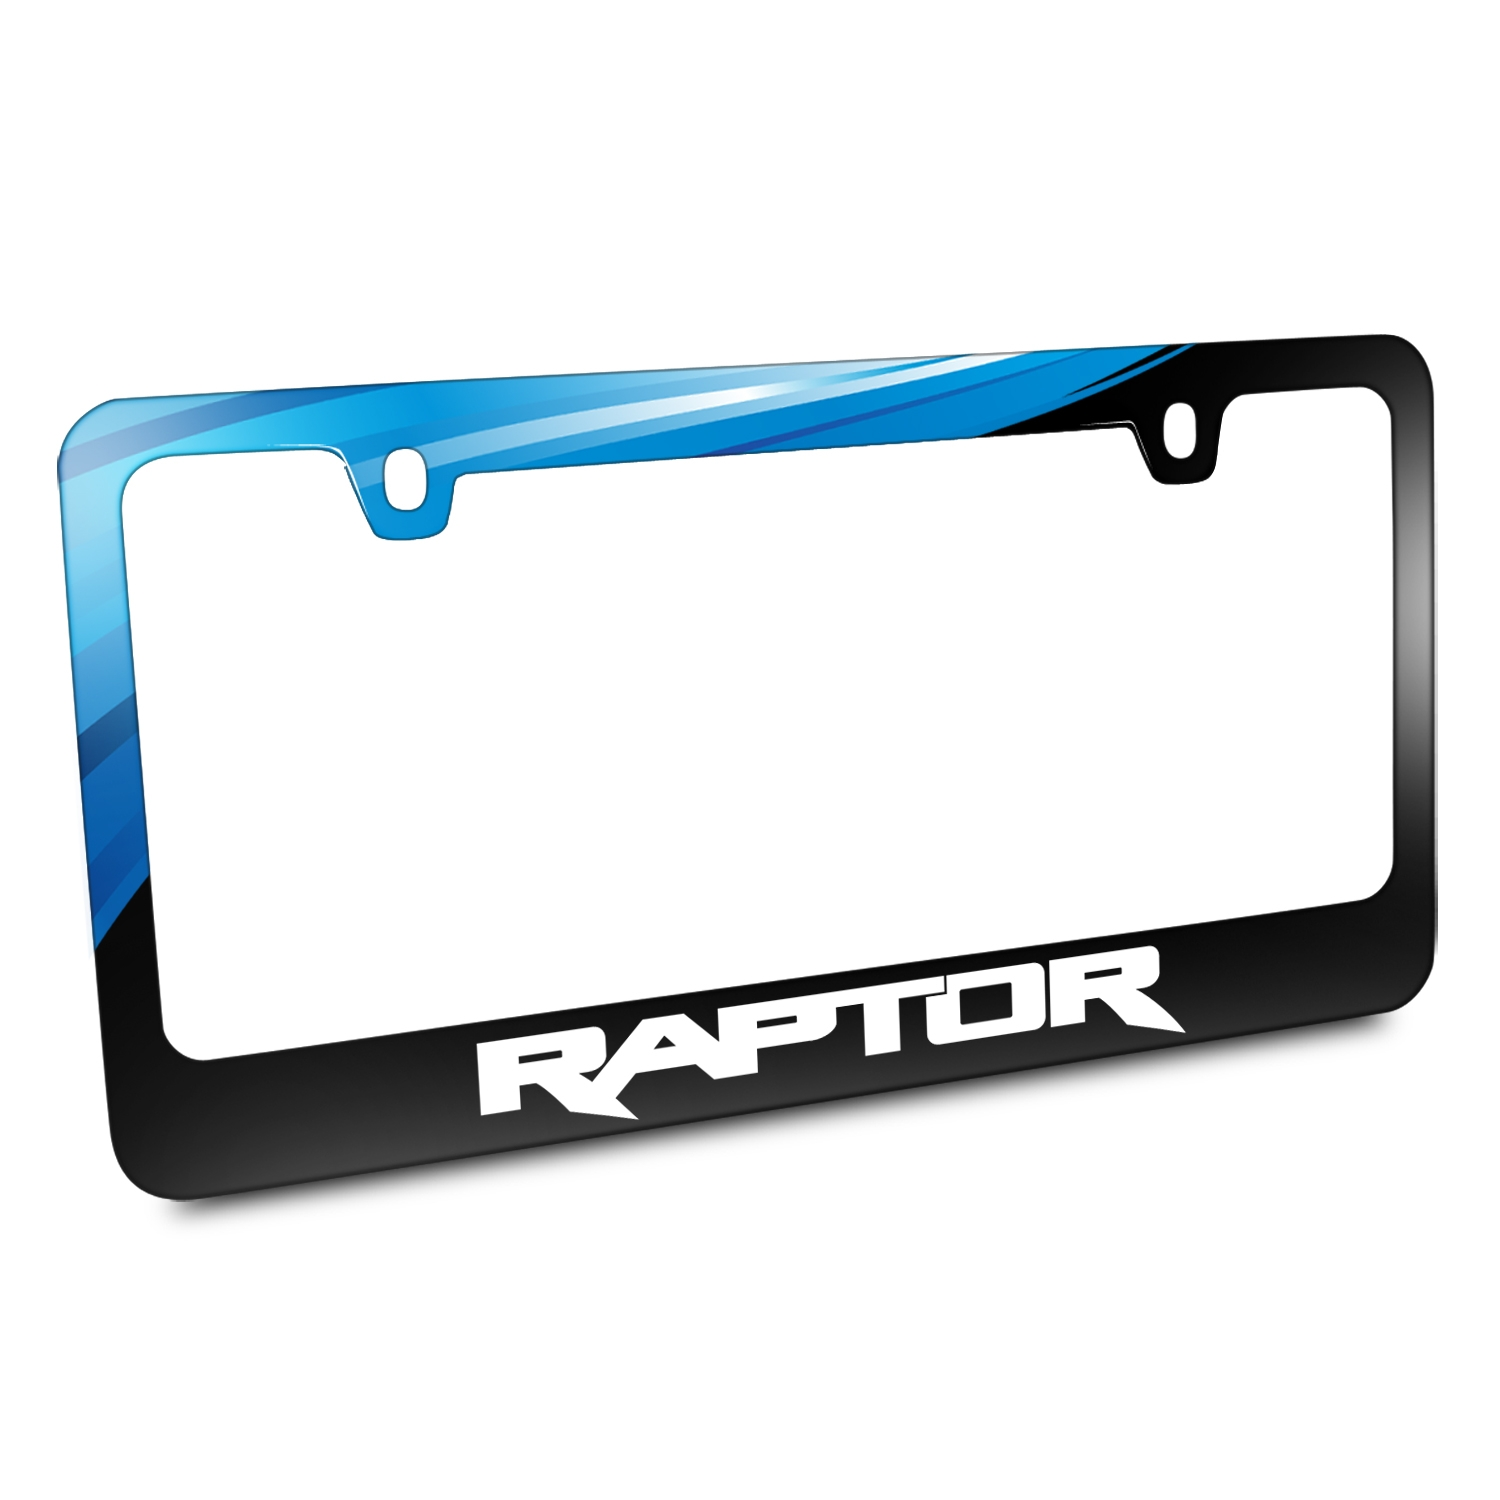 Ford Logo F-150 Raptor Black Metal Graphic License Plate Frame